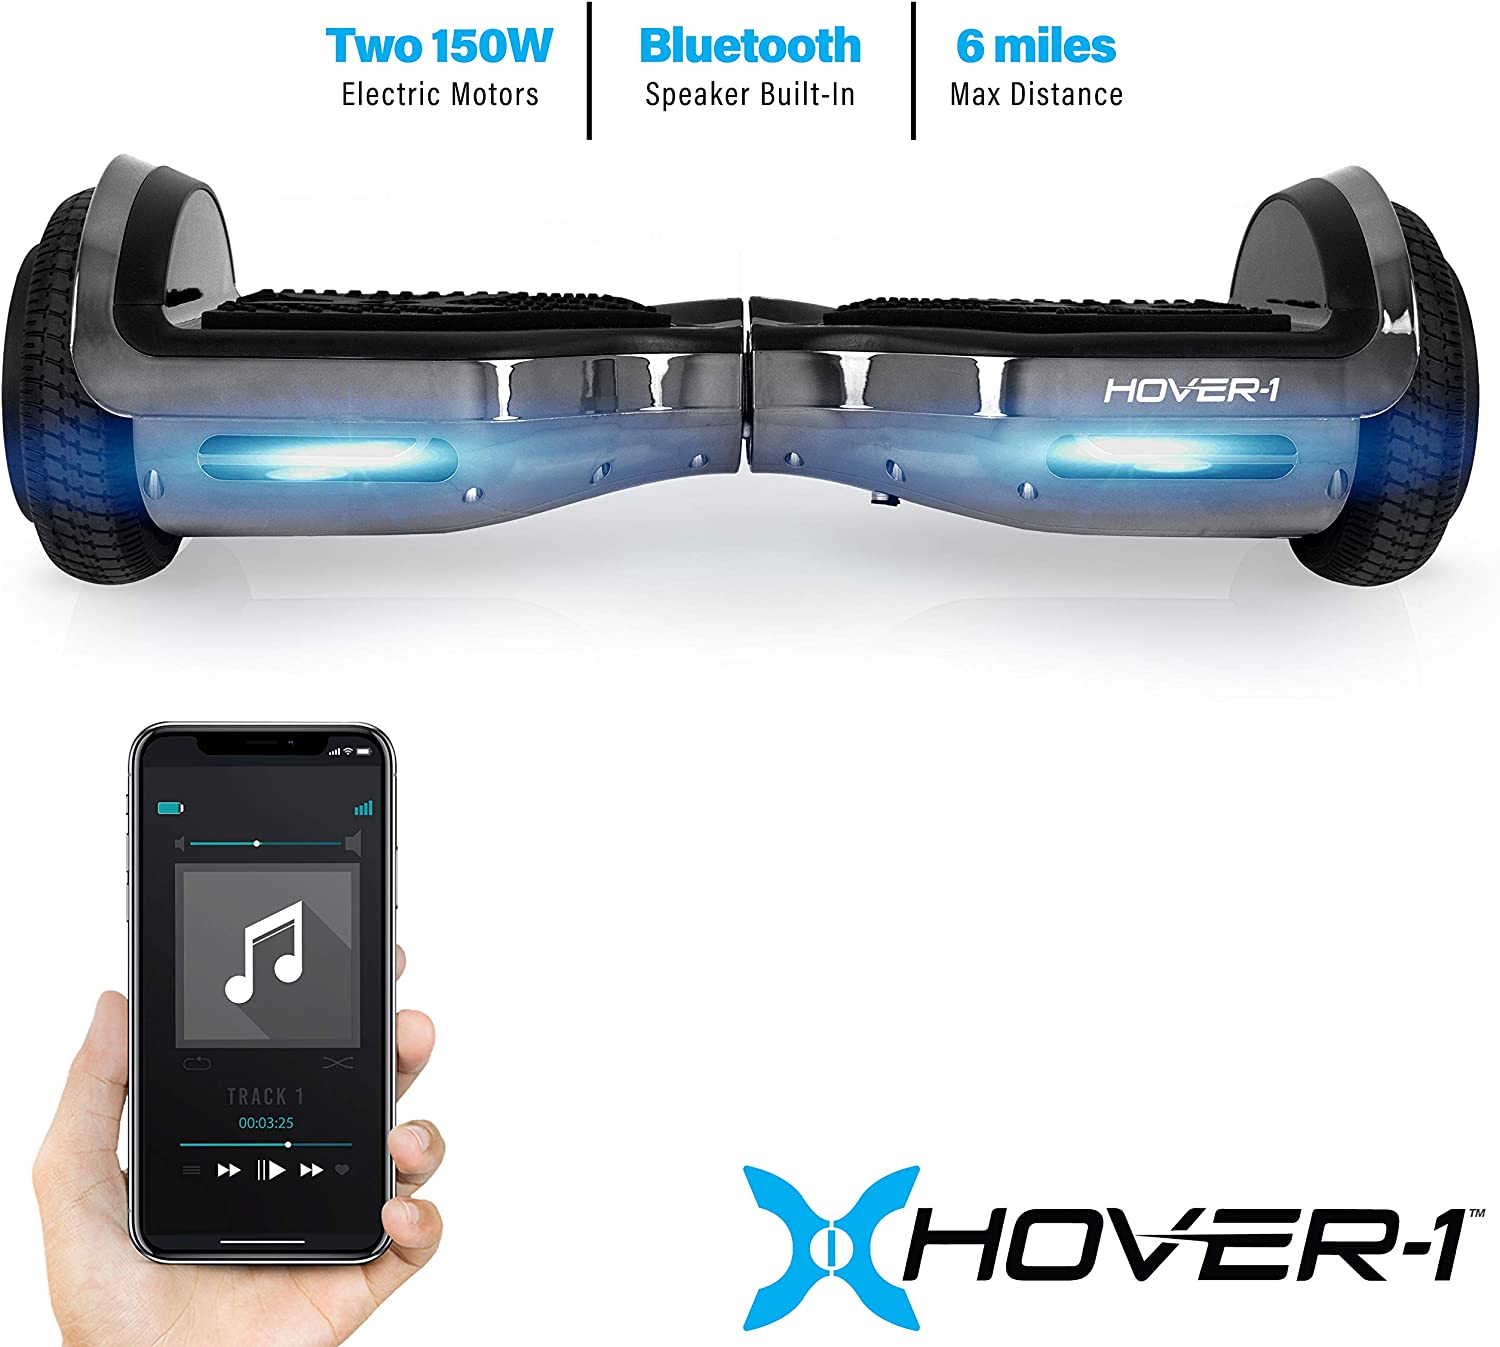 Hover-1 Chrome Electric Hoverboard Scooter Gun Metal - 1